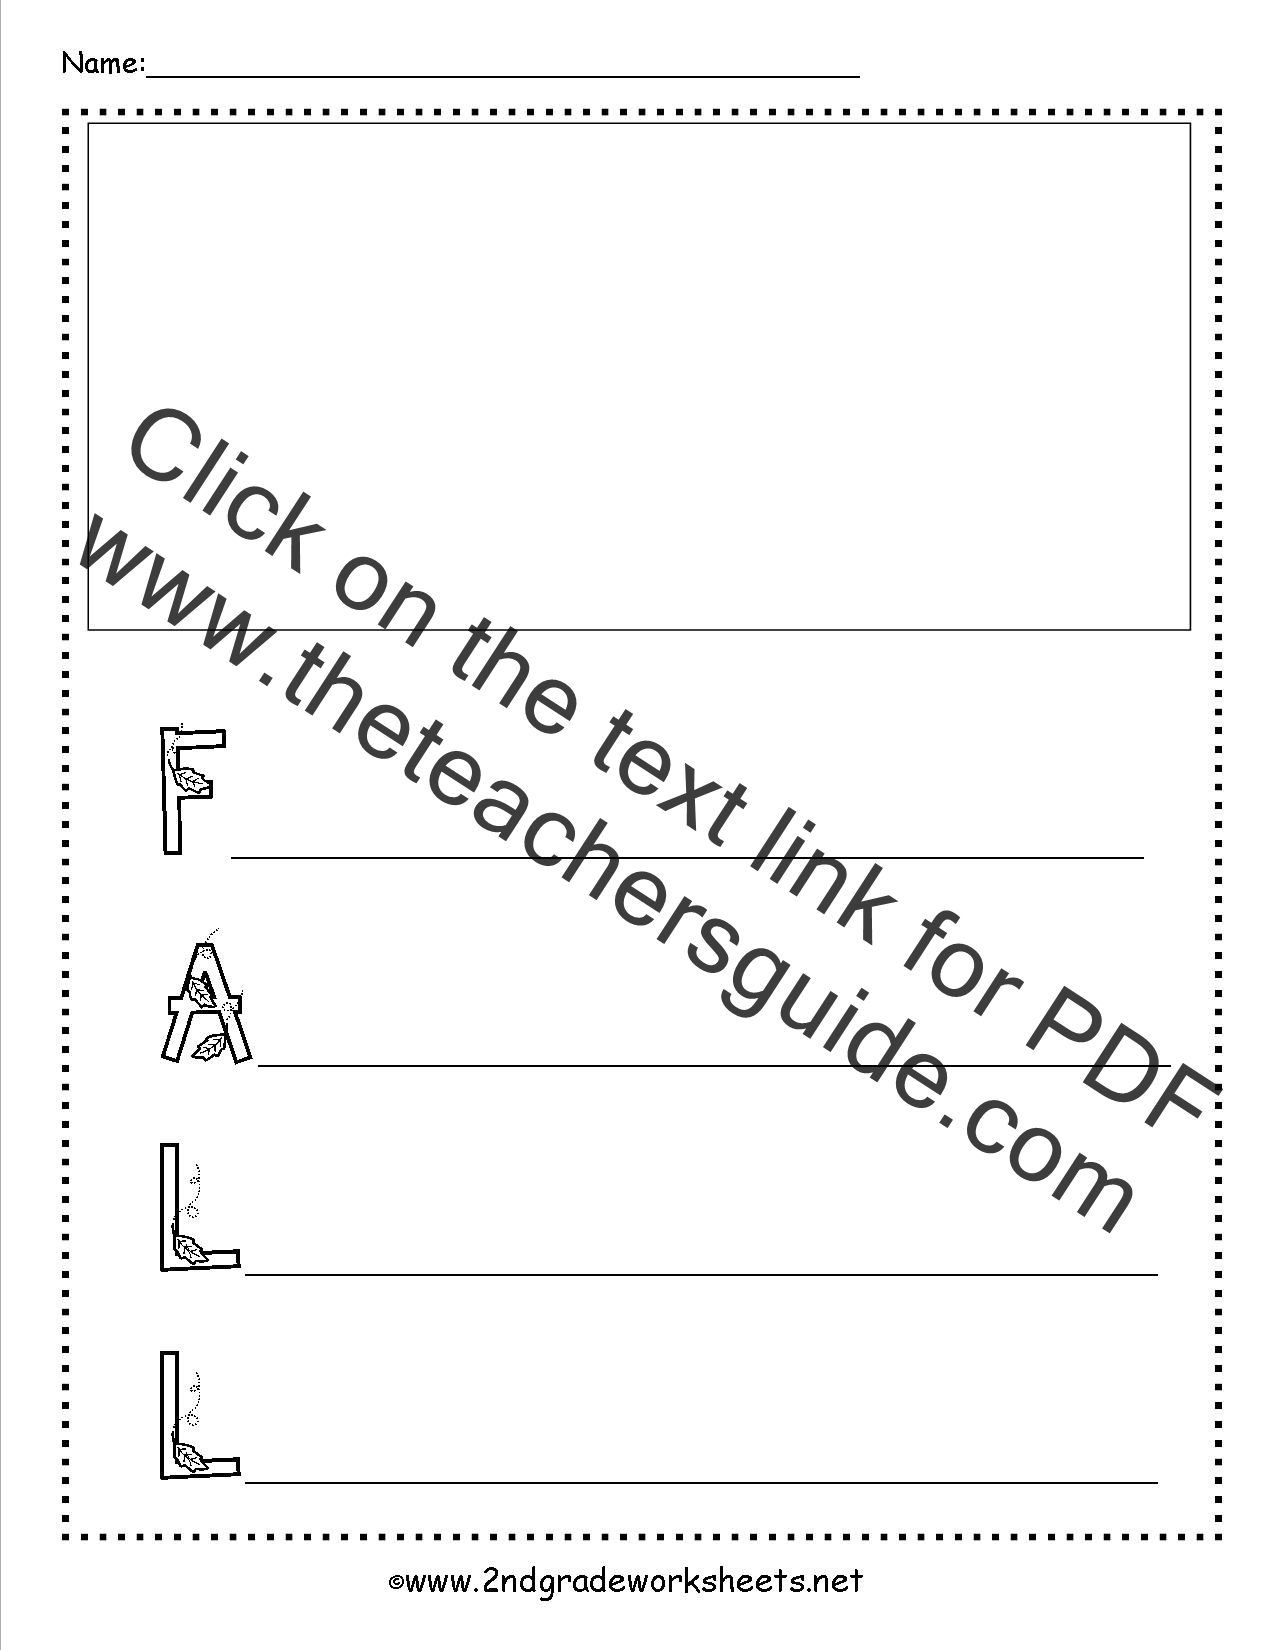 worksheet Autumn Worksheets autumn theme worksheets and printouts fall acrostic poem form